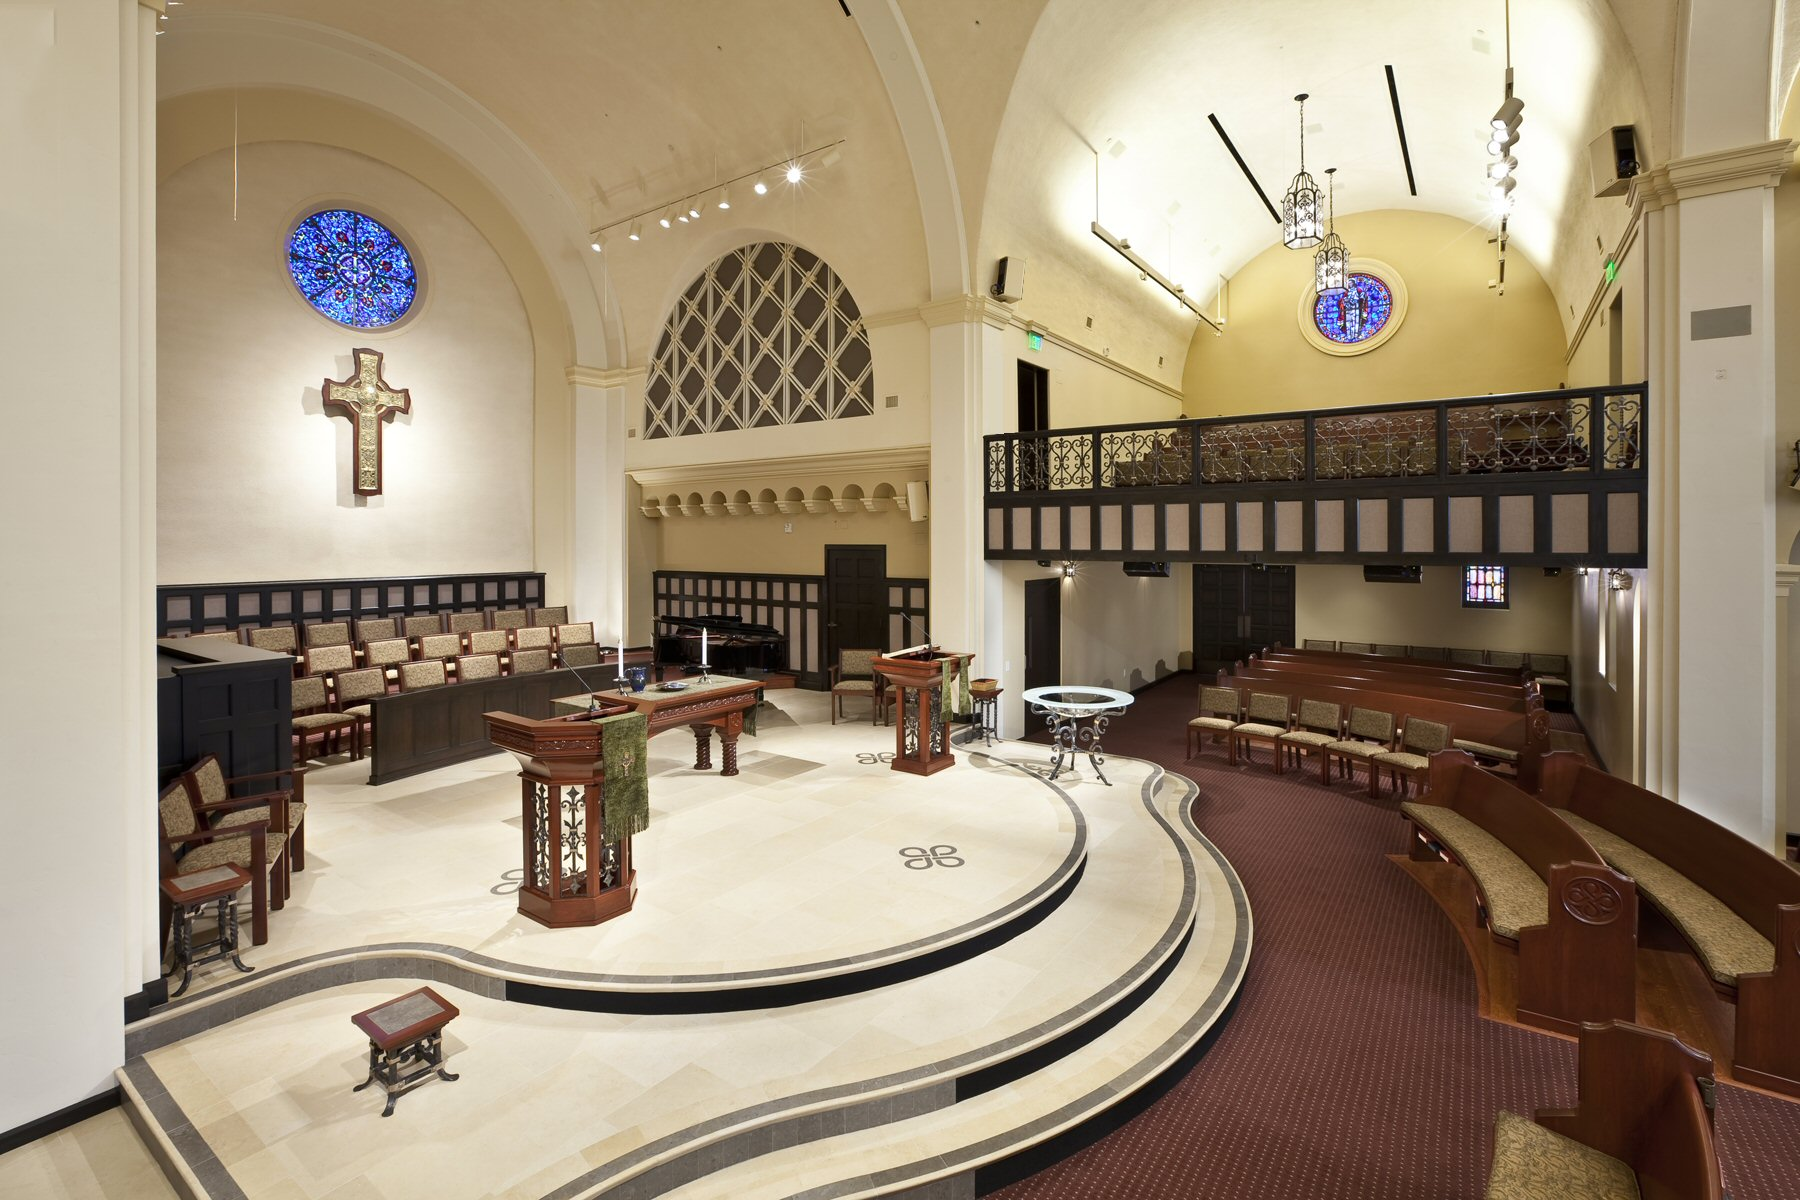 View of Chancel from side Transept at Laguna Presbyterian Church